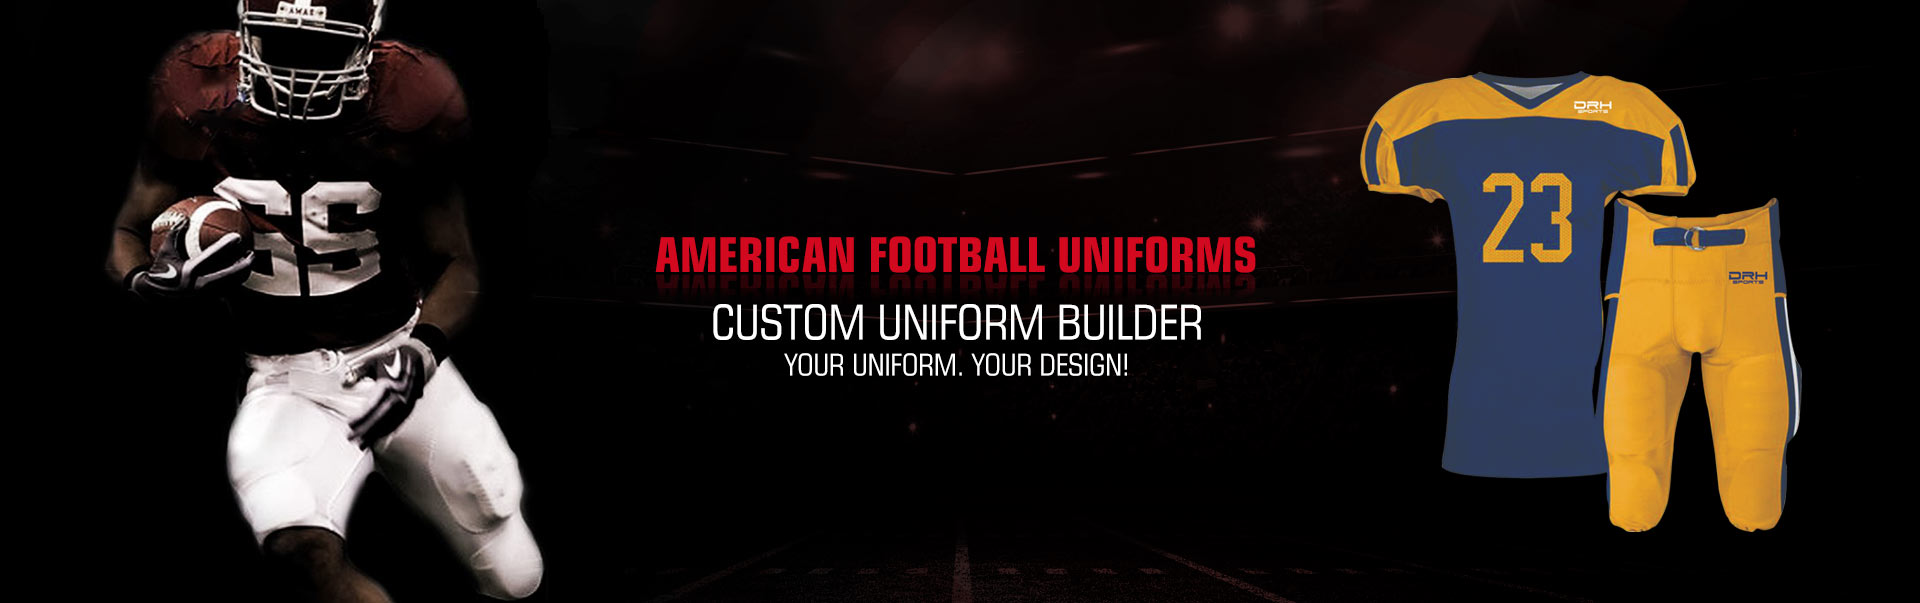 American Football Uniform Wholesaler, Suppliers in Truro